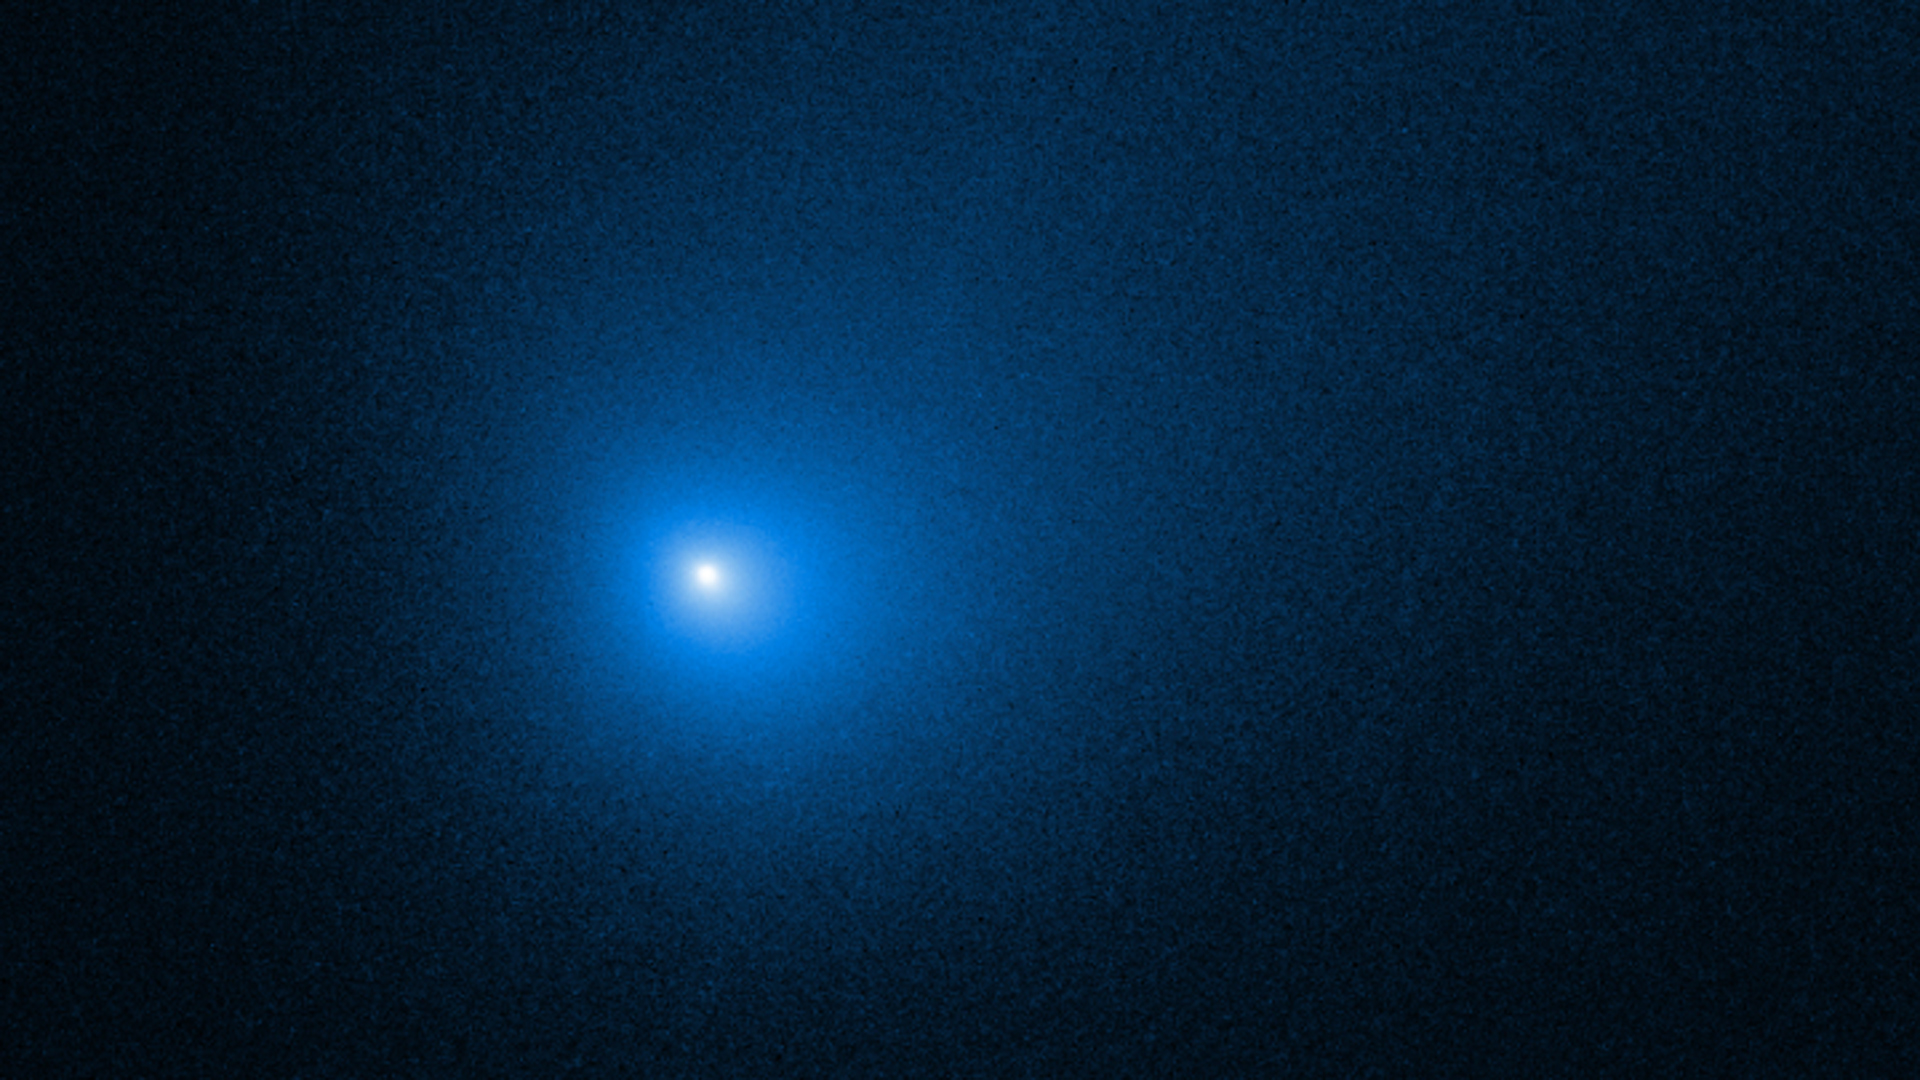 NASA's Hubble Space Telescope captured this image of Comet 2I/Borisov, only the second interstellar object known to have passed through the solar system. (Credits: NASA, ESA and D. Jewitt, UCLA)